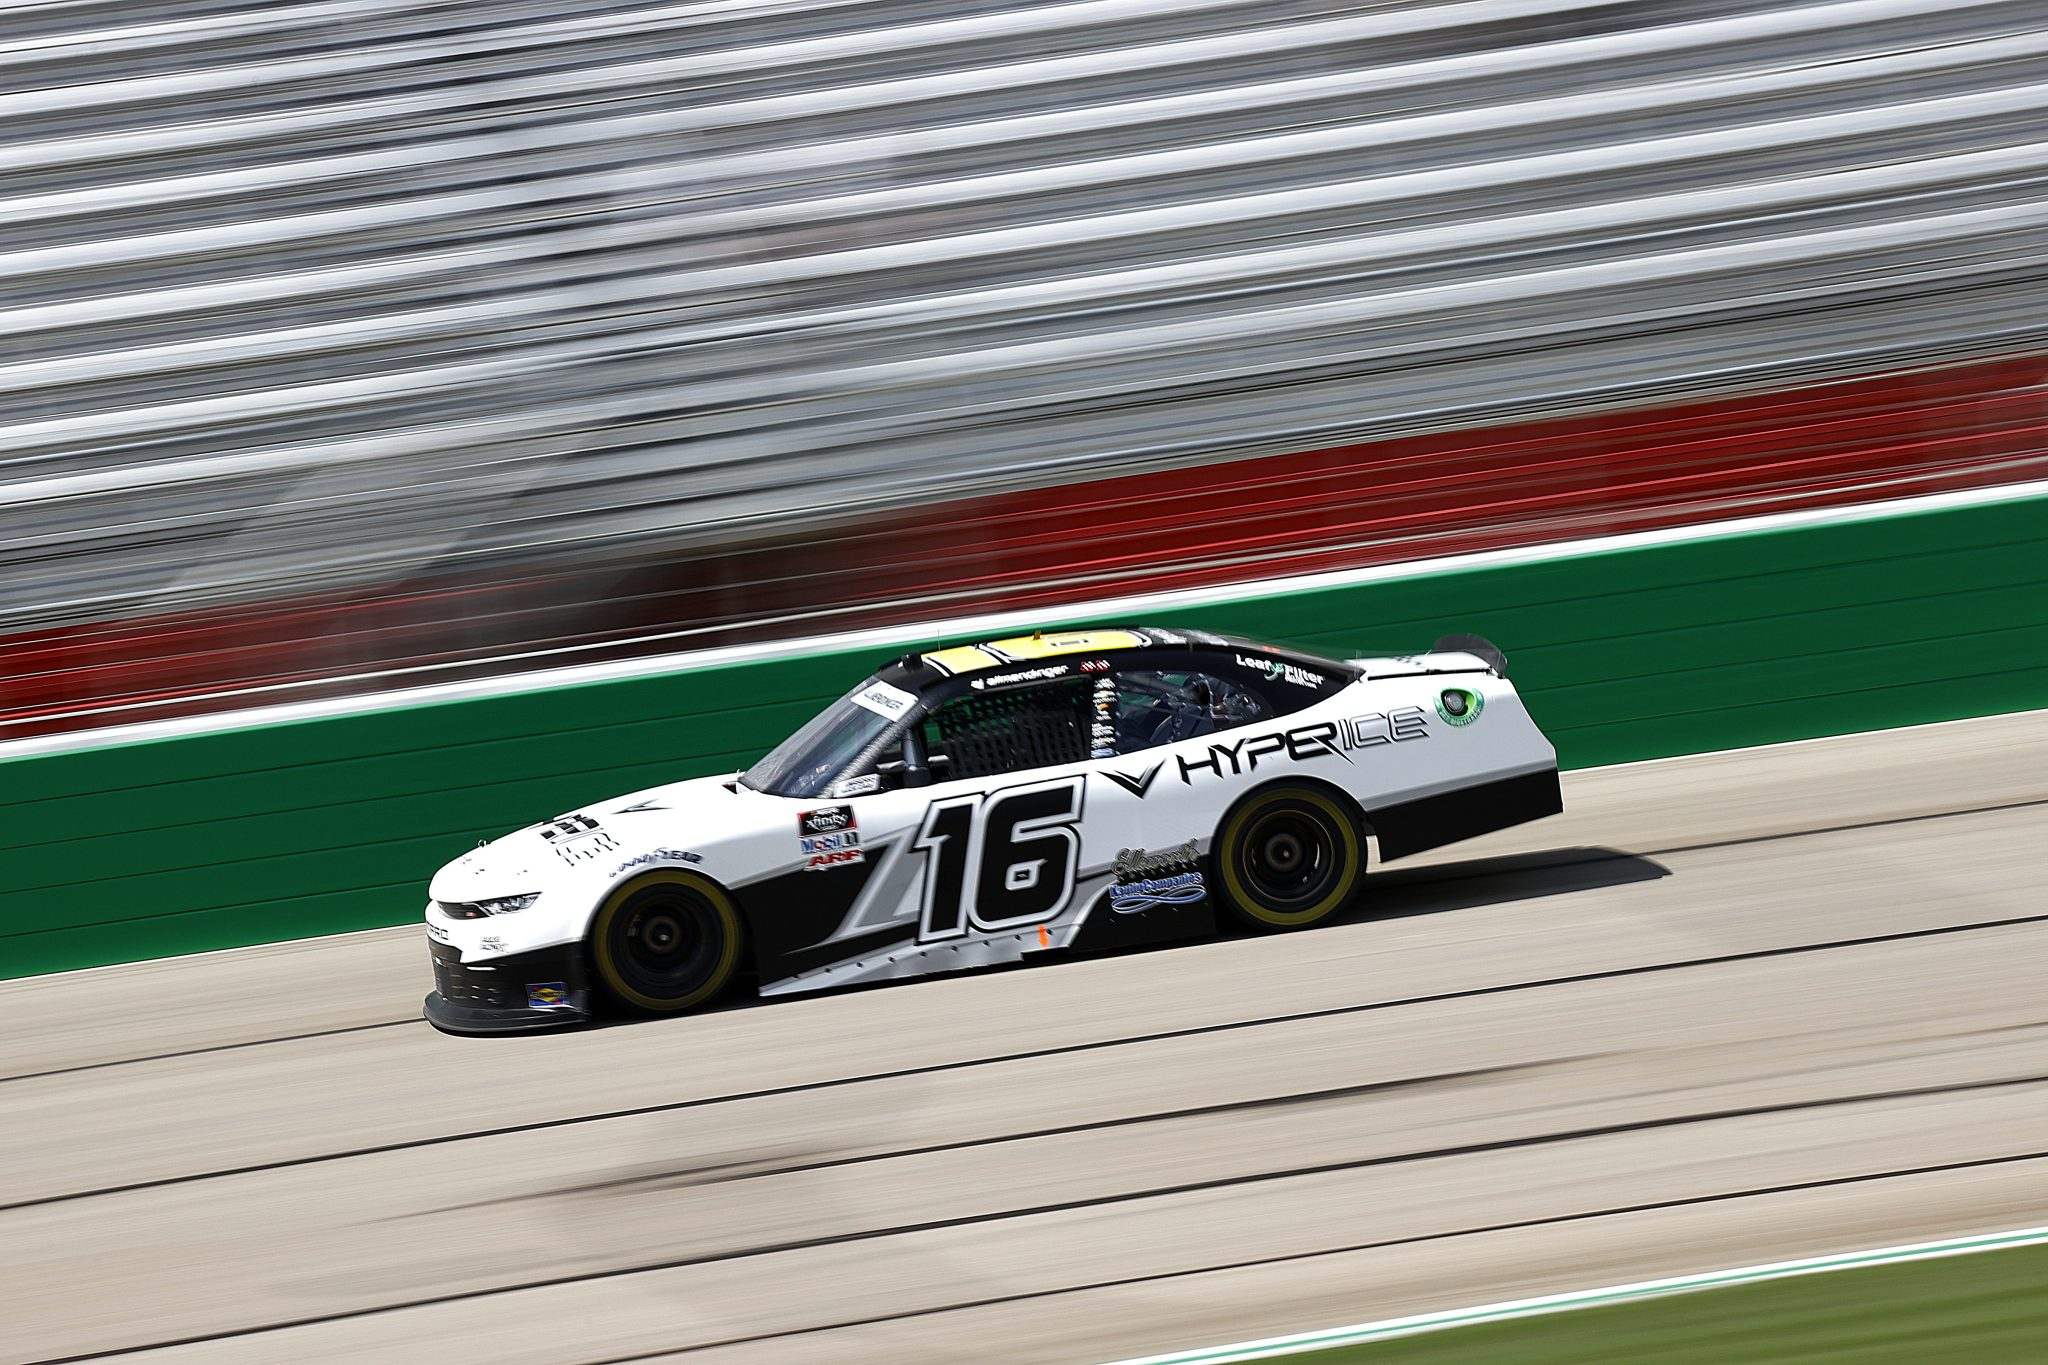 HAMPTON, GEORGIA - JULY 10: AJ Allmendinger, driver of the #16 Hyperice Chevrolet, drives during the NASCAR Xfinity Series Credit Karma Money 250 at Atlanta Motor Speedway on July 10, 2021 in Hampton, Georgia. (Photo by Jared C. Tilton/Getty Images) | Getty Images